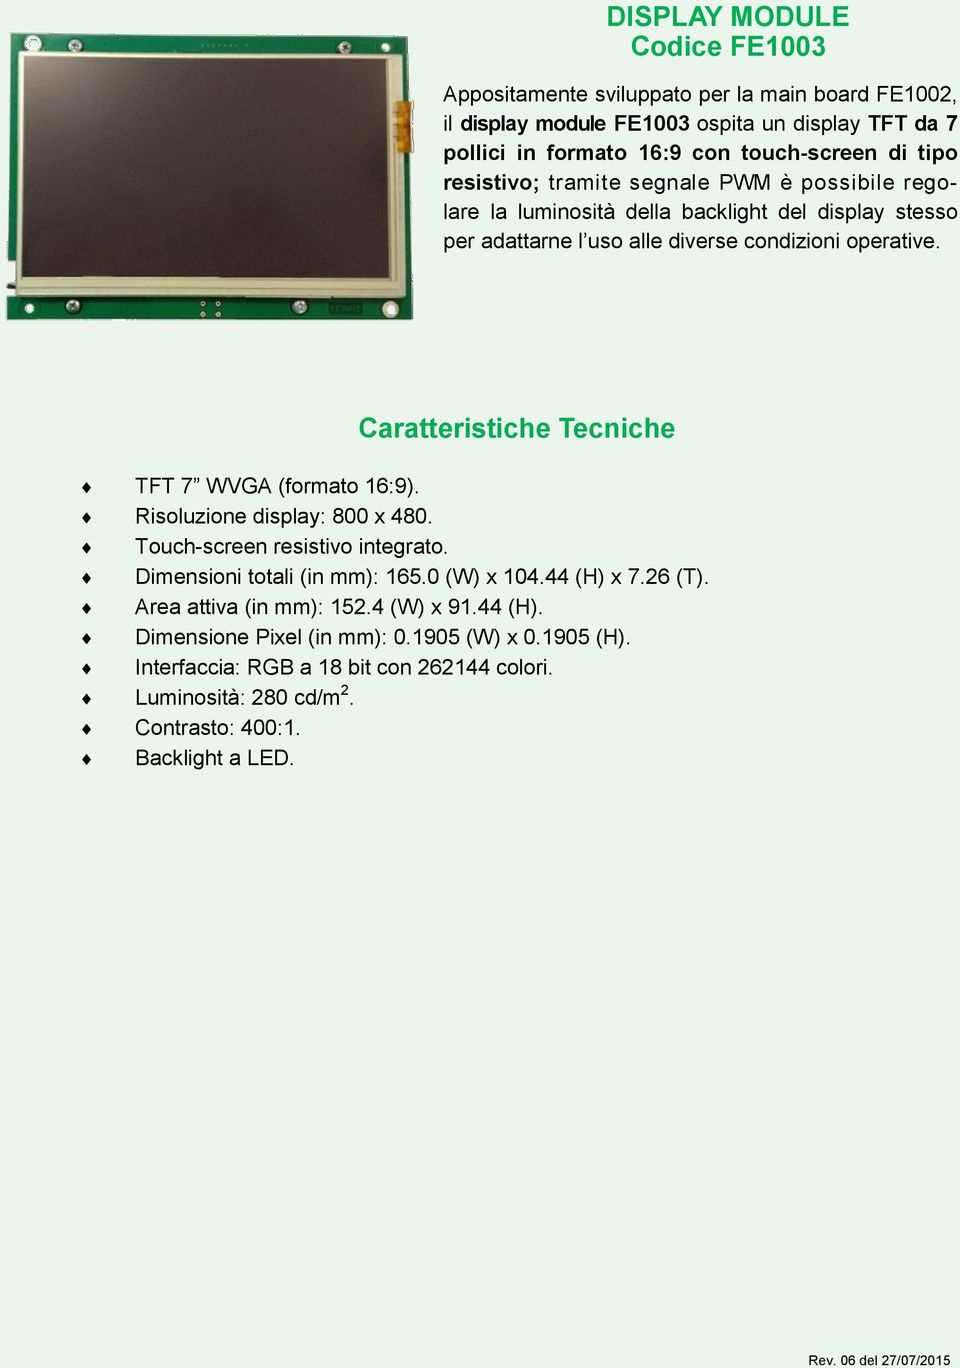 Caratteristiche Tecniche TFT 7 WVGA (formato 16:9). Risoluzione display: 800 x 480. Touch-screen resistivo integrato. Dimensioni totali (in mm): 165.0 (W) x 104.44 (H) x 7.26 (T).